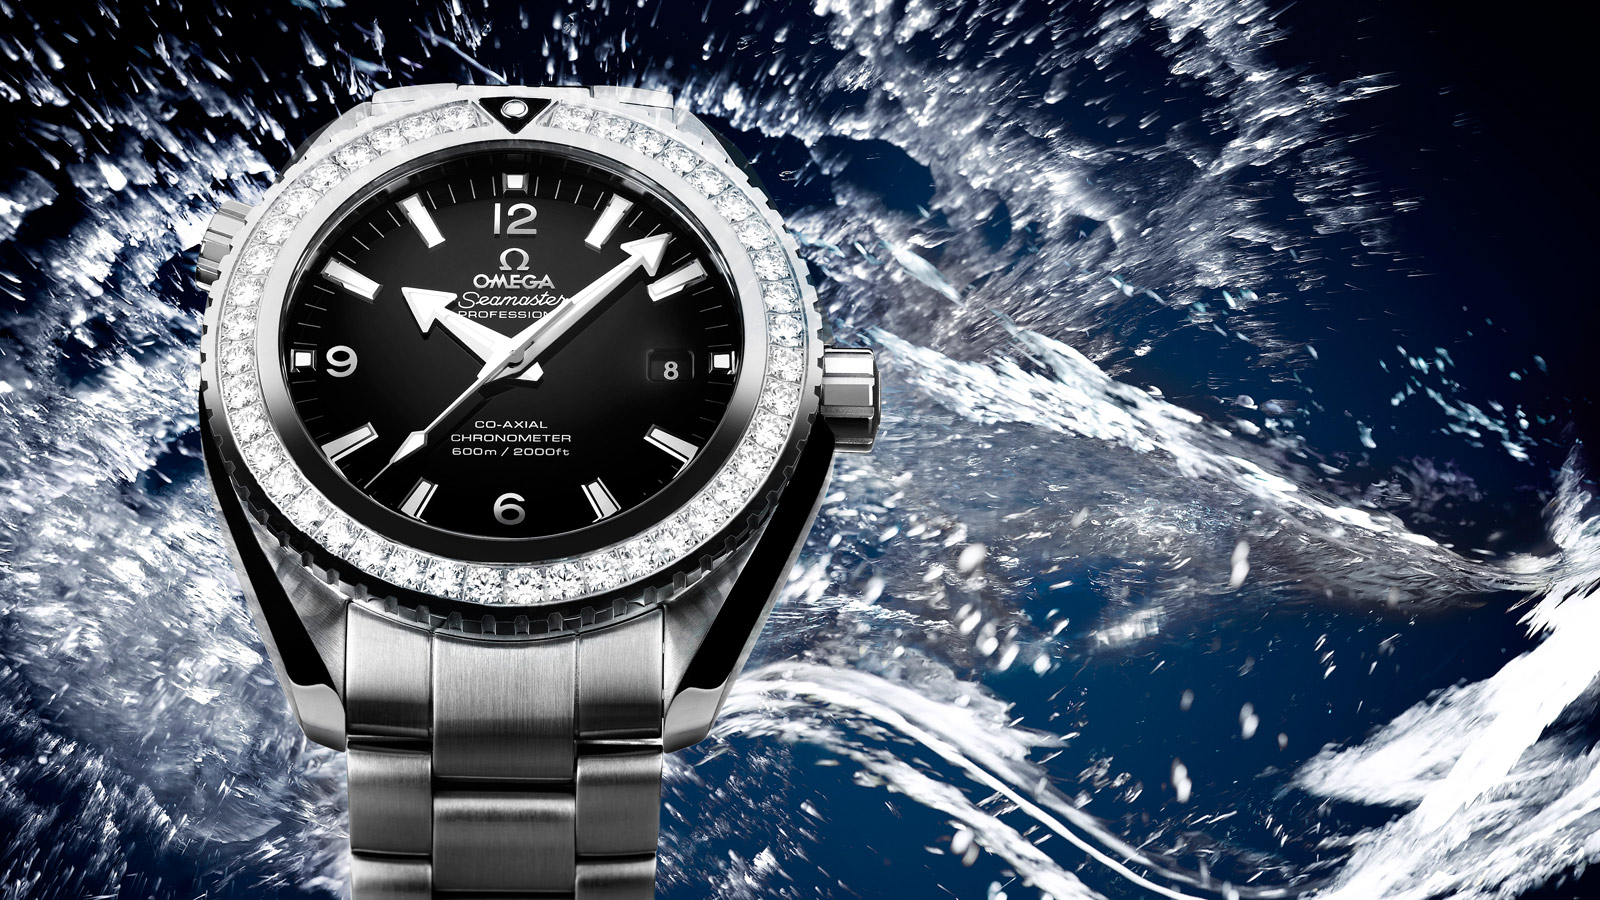 Seamaster Planet Ocean 600M Planet Ocean 600M Omega Co‑Axial 45.5 mm - 232.15.46.21.01.001 - View 1